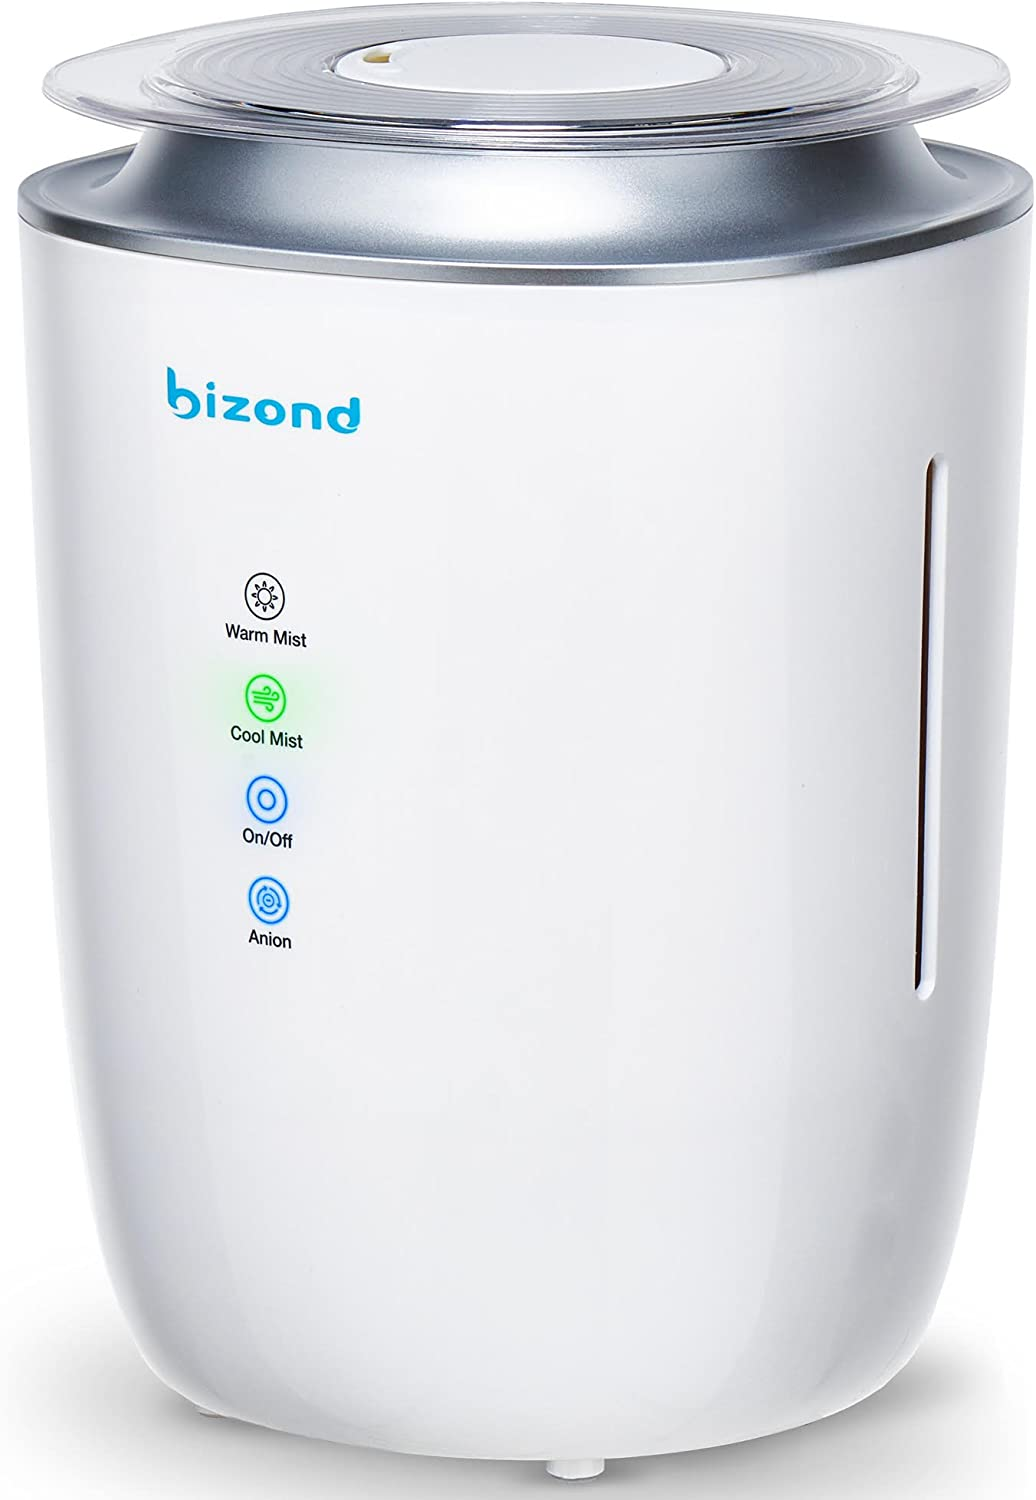 BIZOND Ultrasonic Humidifier Ultra Quiet – Warm and Cool Mist Humidifier for Bedroom, Home, Office and Kids Baby Room – 24h Air Humidifier Energy Efficient, 4l Capacity, White